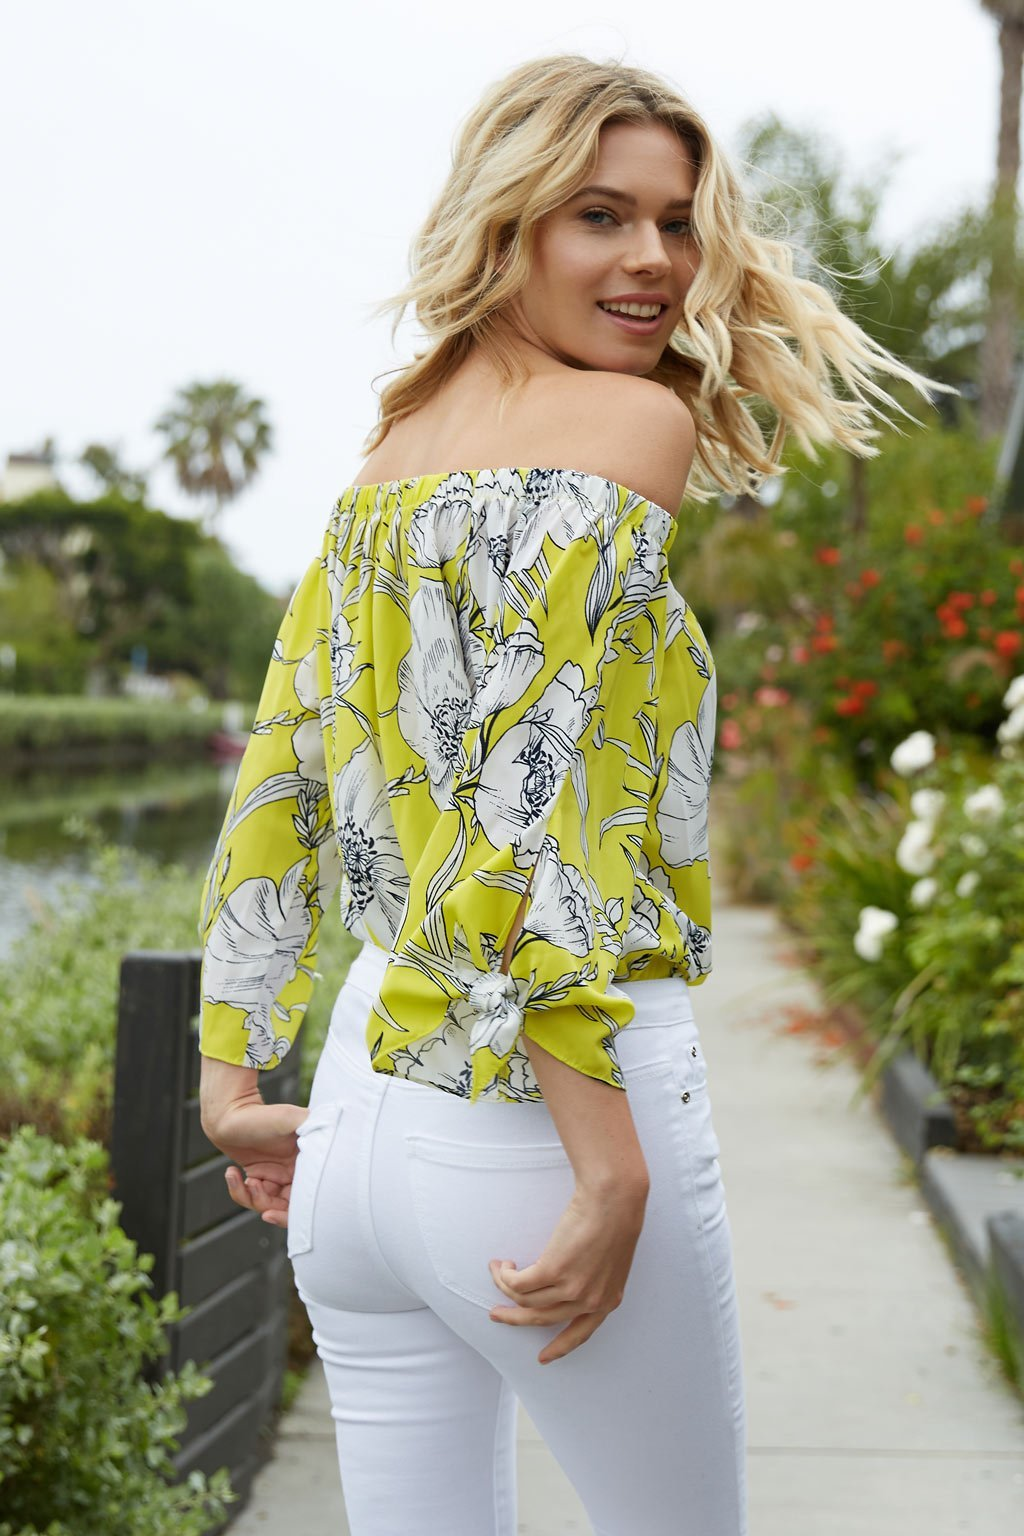 Poshsquare Tops Yellow Floral Off the Shoulder Top